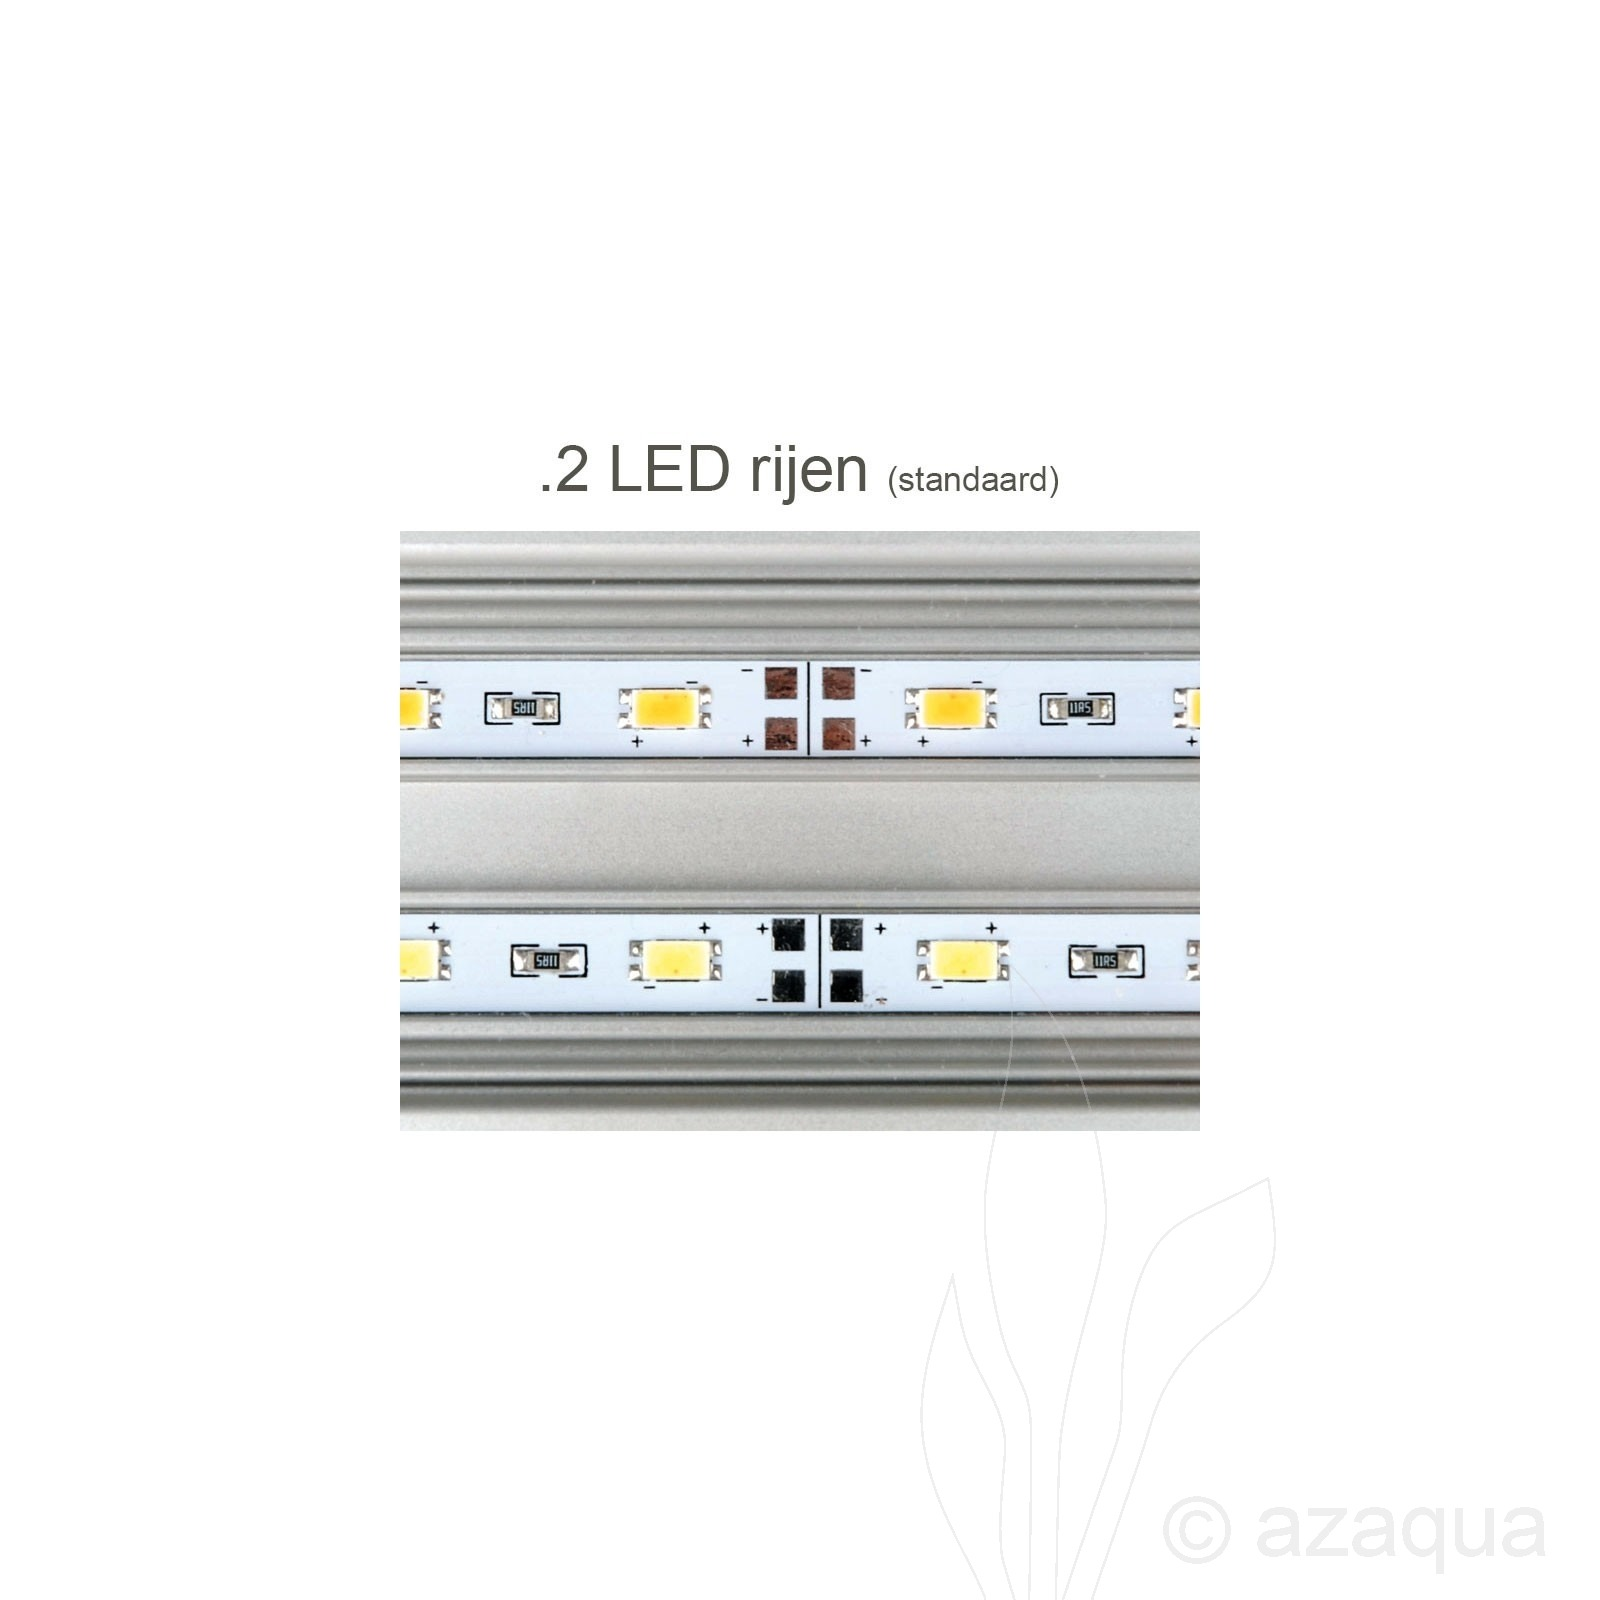 Daytime eco 40 - LED aquarium lighting